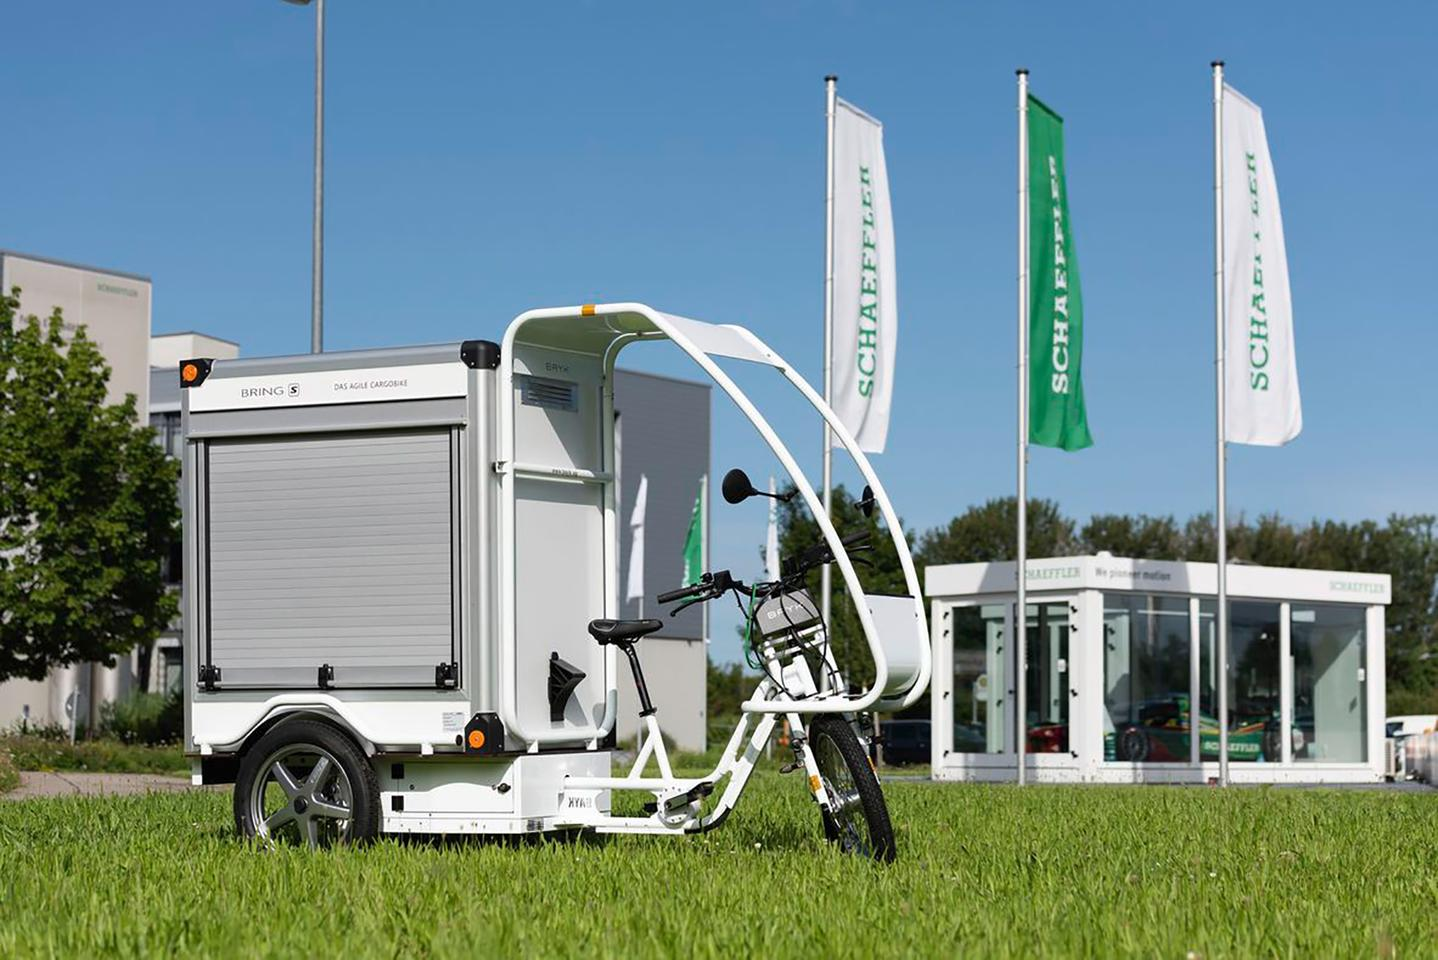 Along with ebikes, Free Drive could also be incorporated into 3- or 4-wheeled vehicles – it's built into this delivery trike